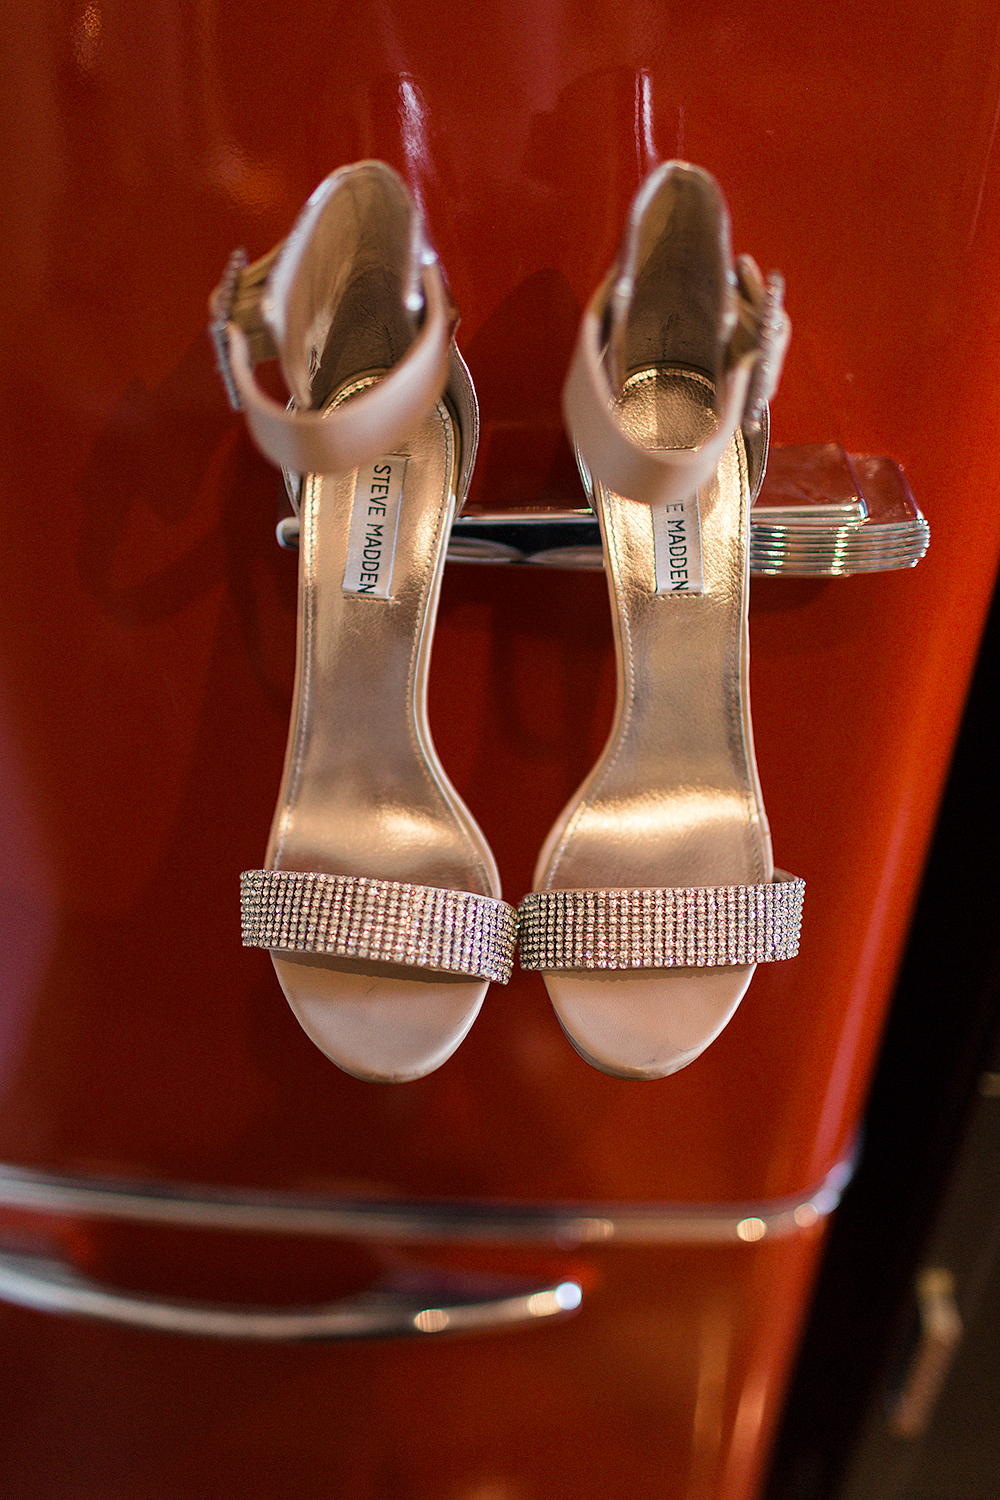 Shoe details from Toronto Wedding Photographer 3B Photography